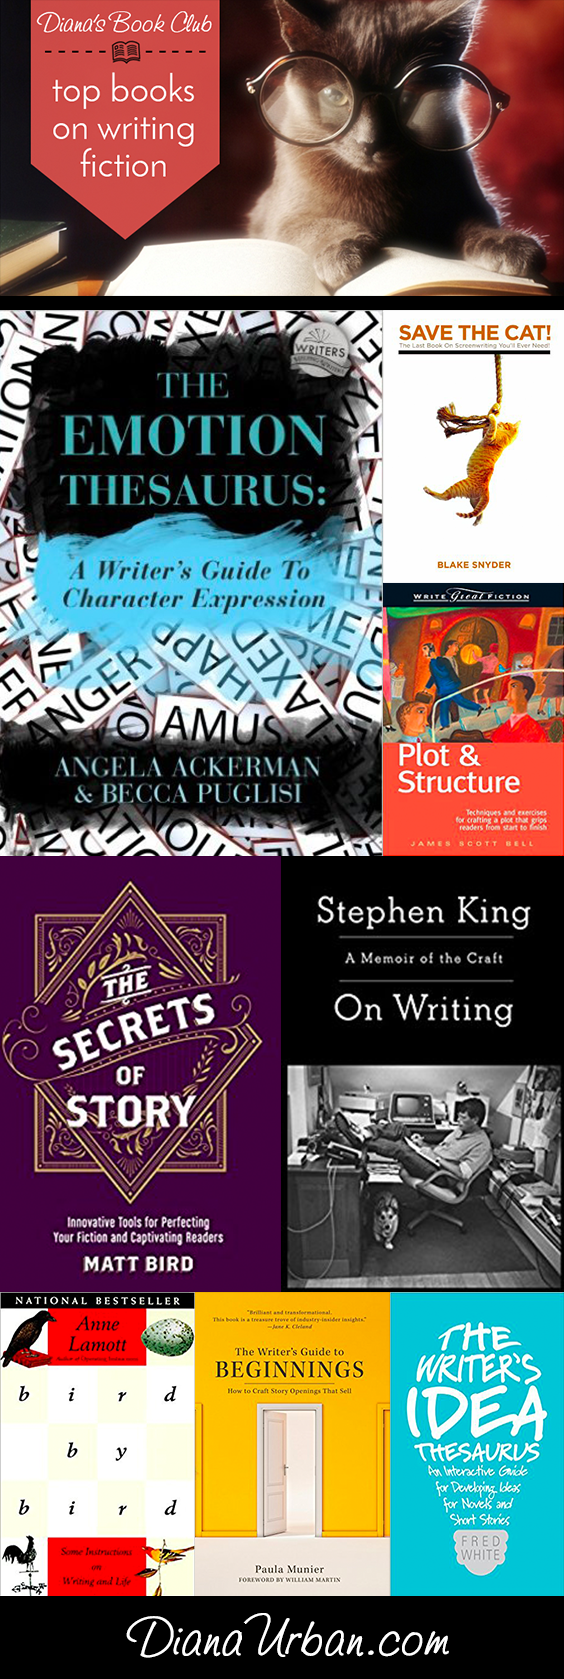 Top Books on Writing Fiction #amwriting #writetip